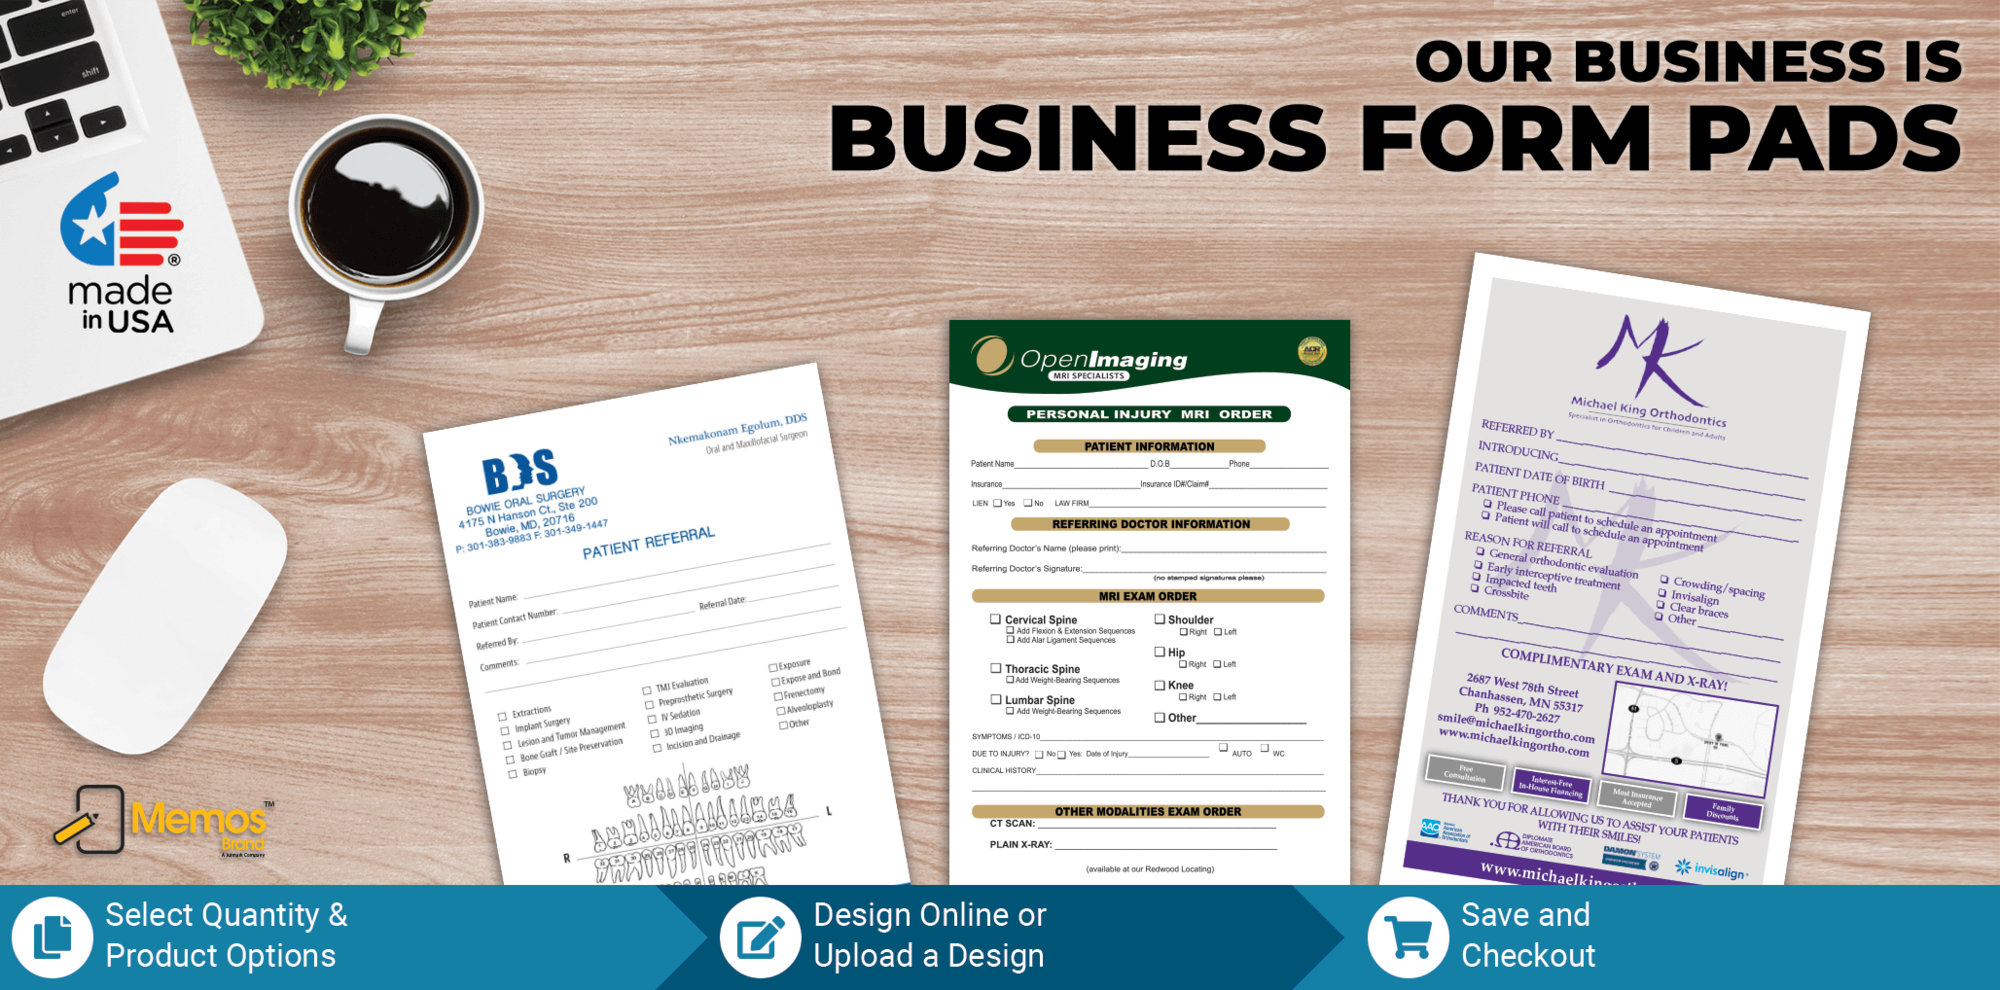 https://printpps.com/images/products_gallery_images/Banner_5x8-BusinessForm-Pads_ProdFeat_Cover43.png